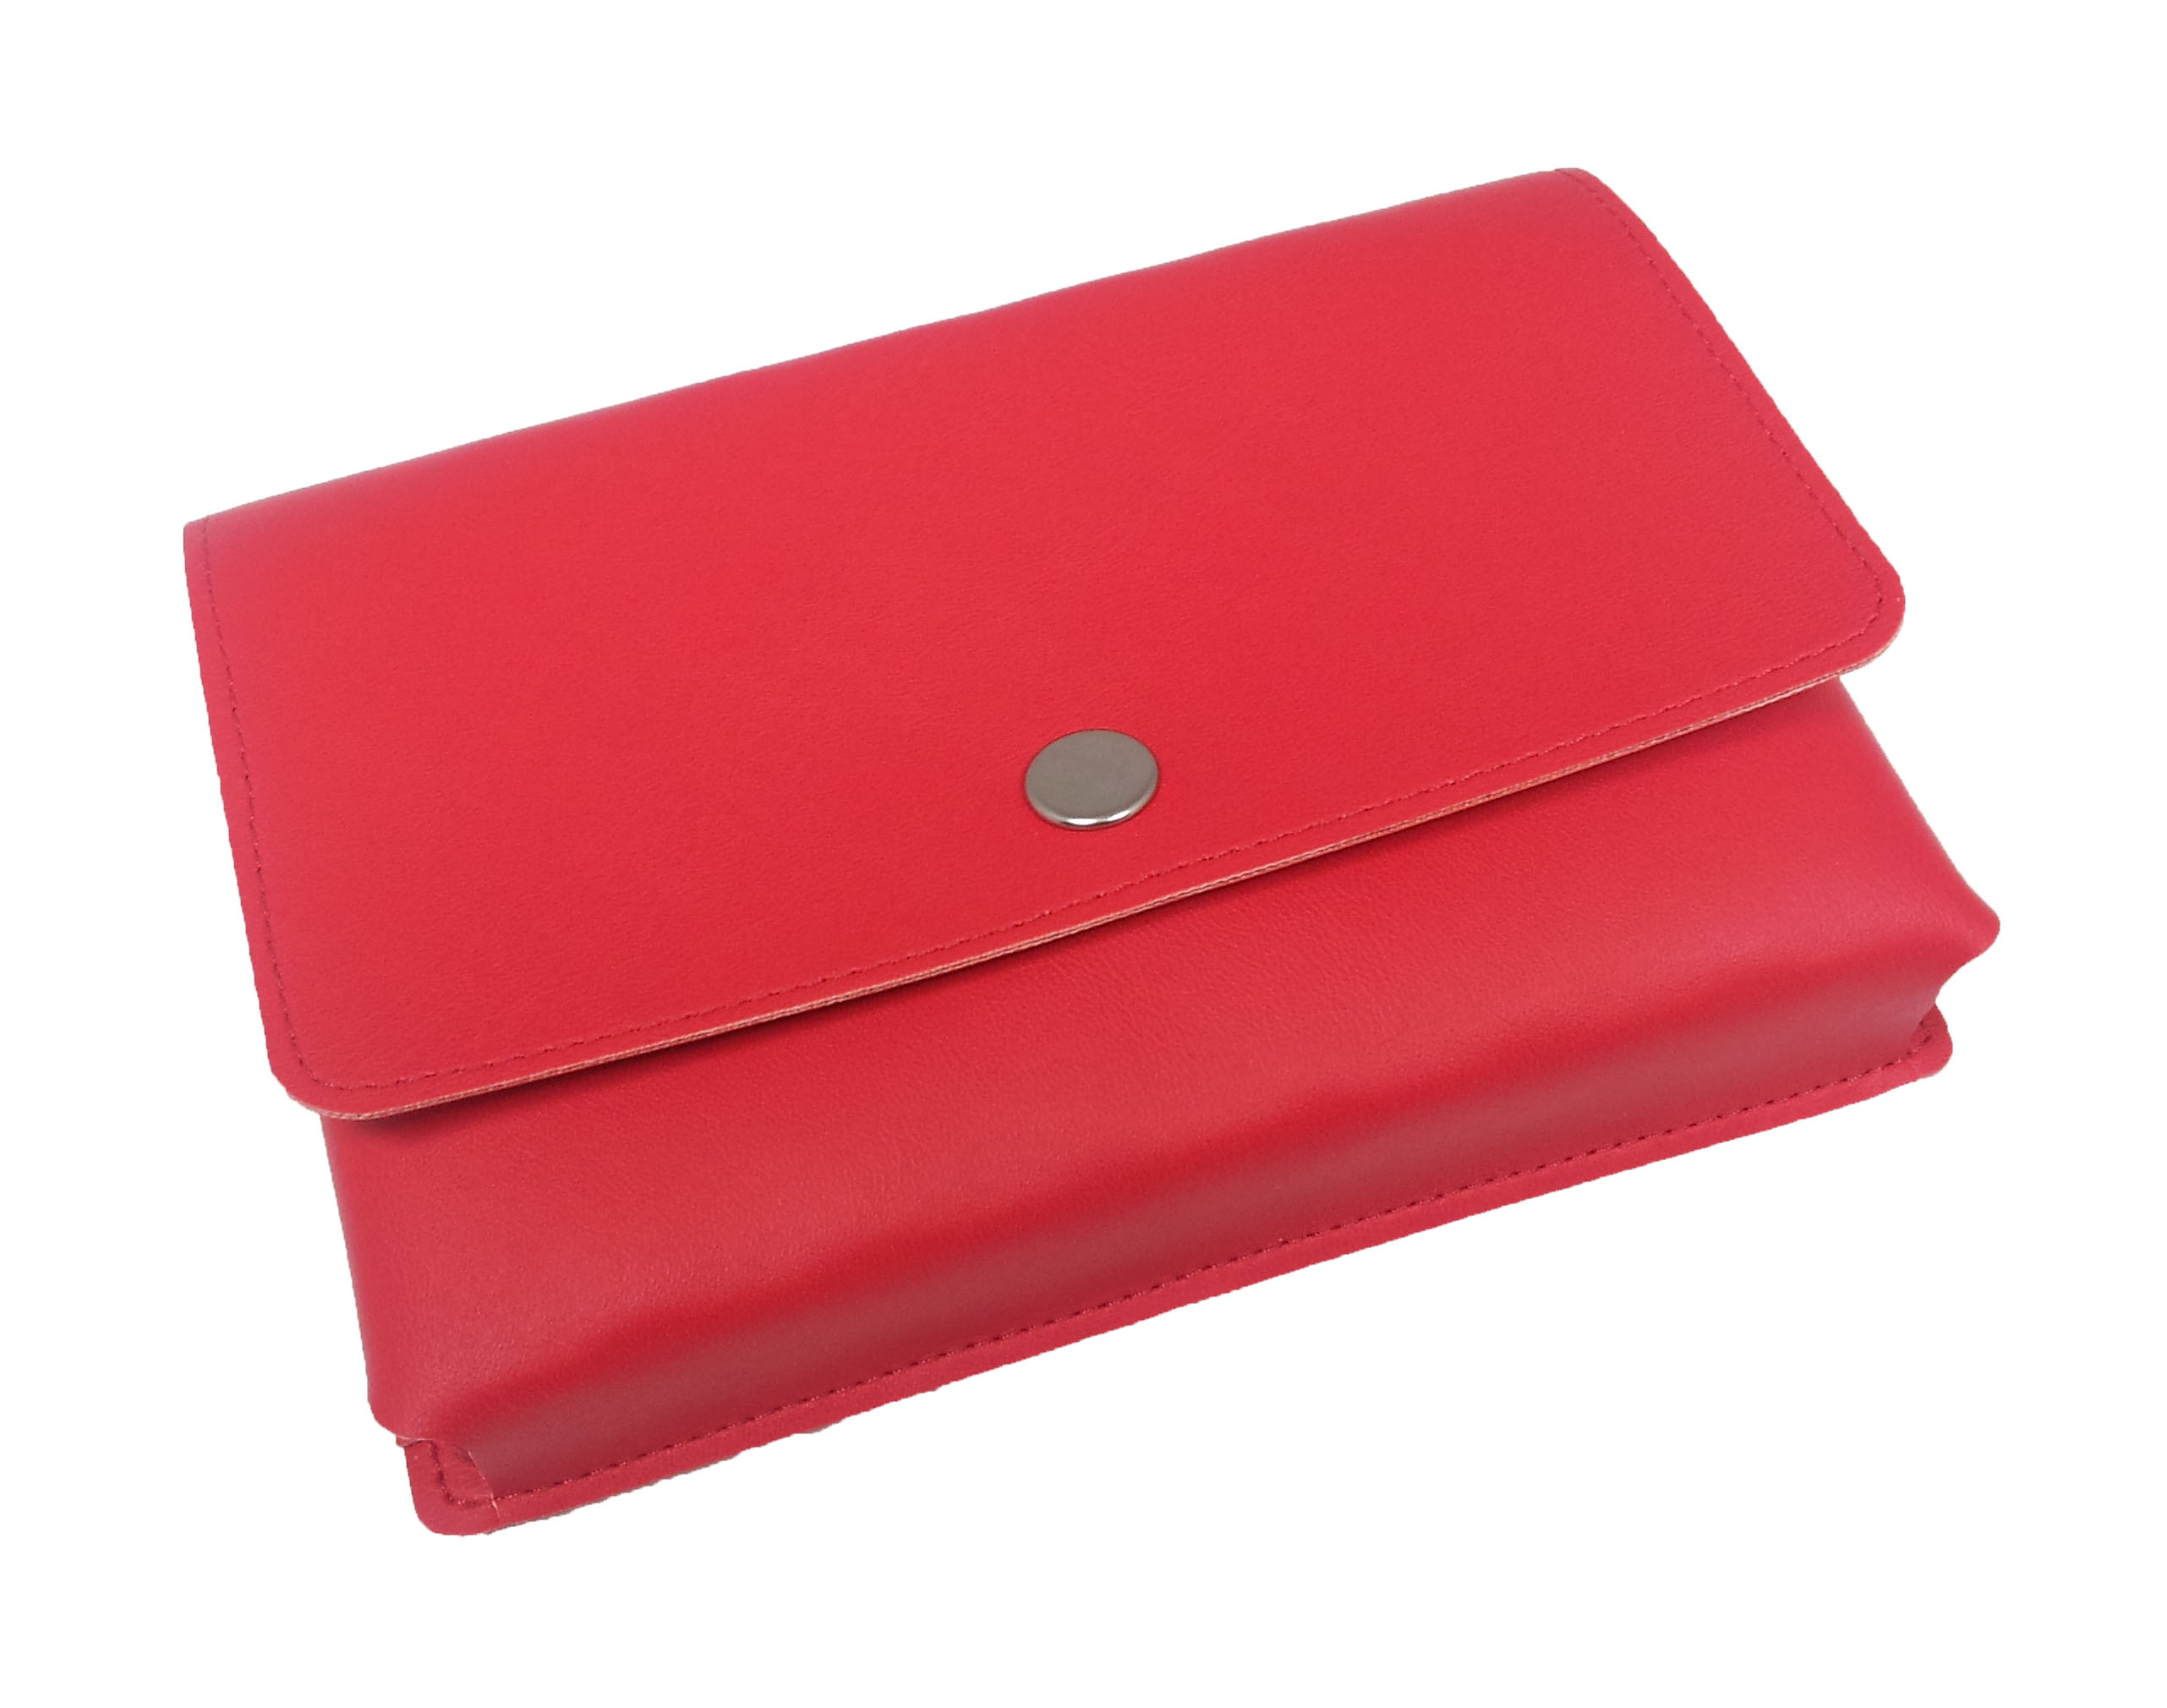 Medidos No. 1 - in a Red Leatherette Case